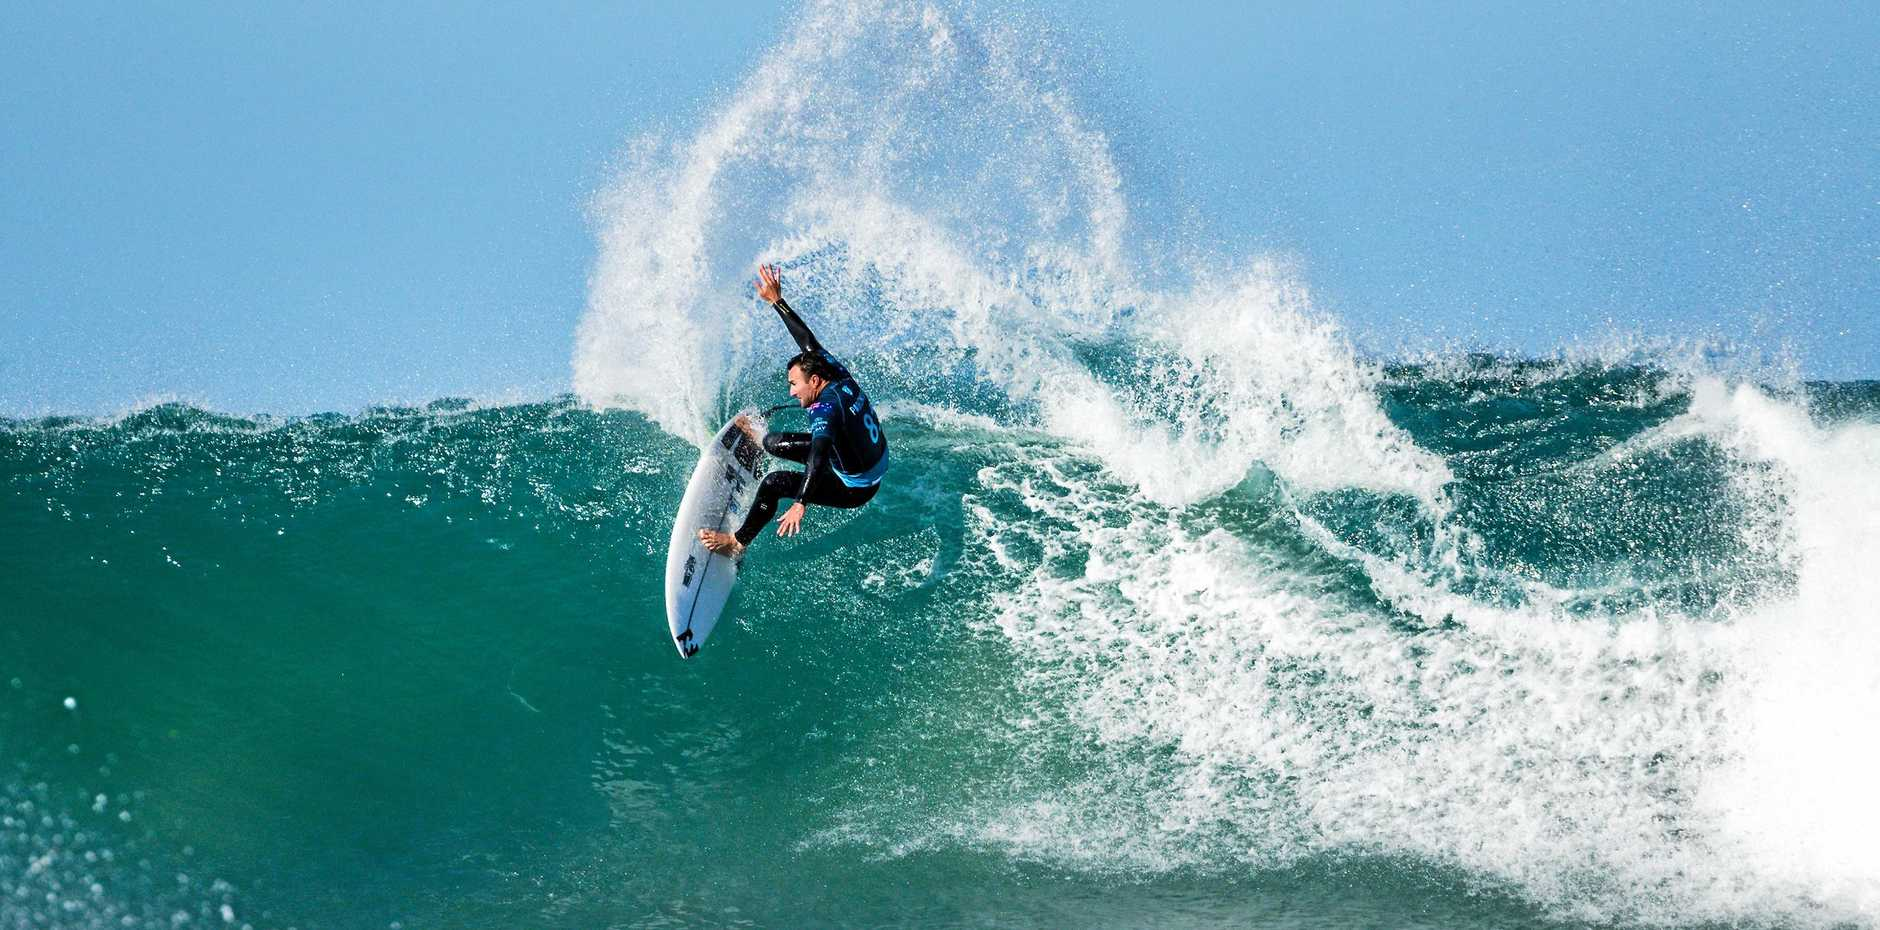 Australia's Joel Parkinson is through to round four at Jeffreys Bay. Picture: Kelly Cestari/World Surf League